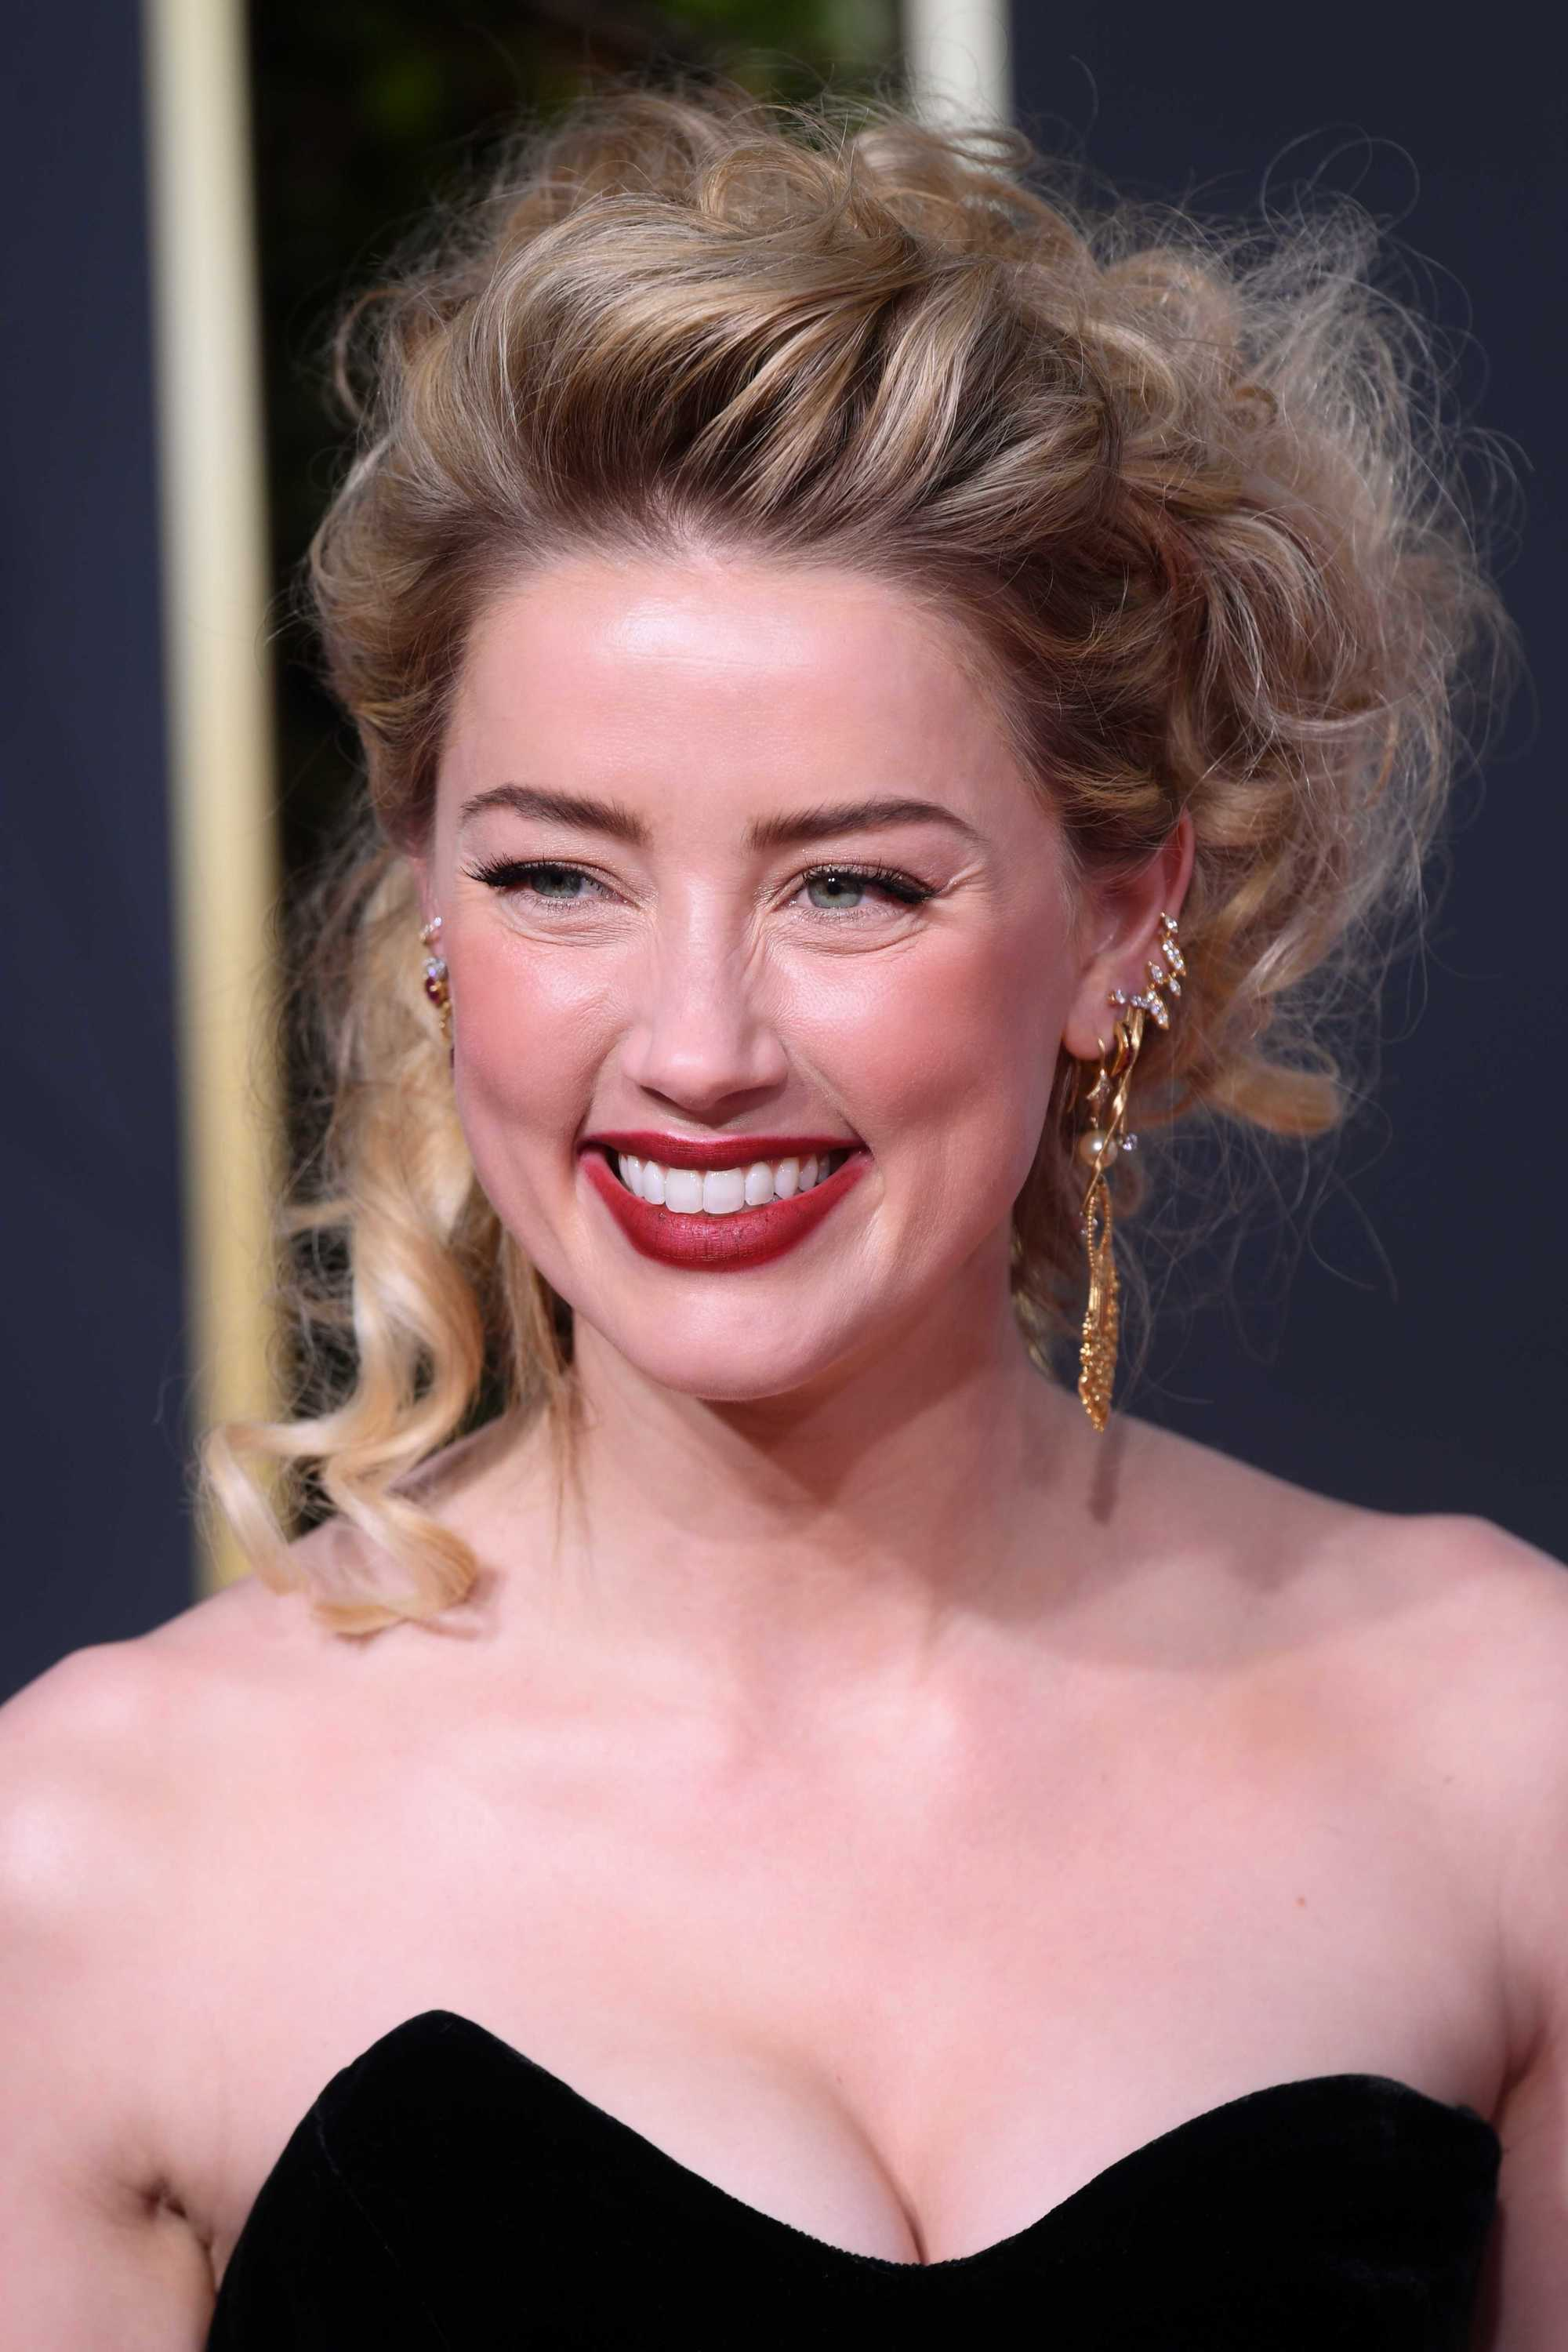 Amber Heard with her ash blonde hair styled into swept back curly updo